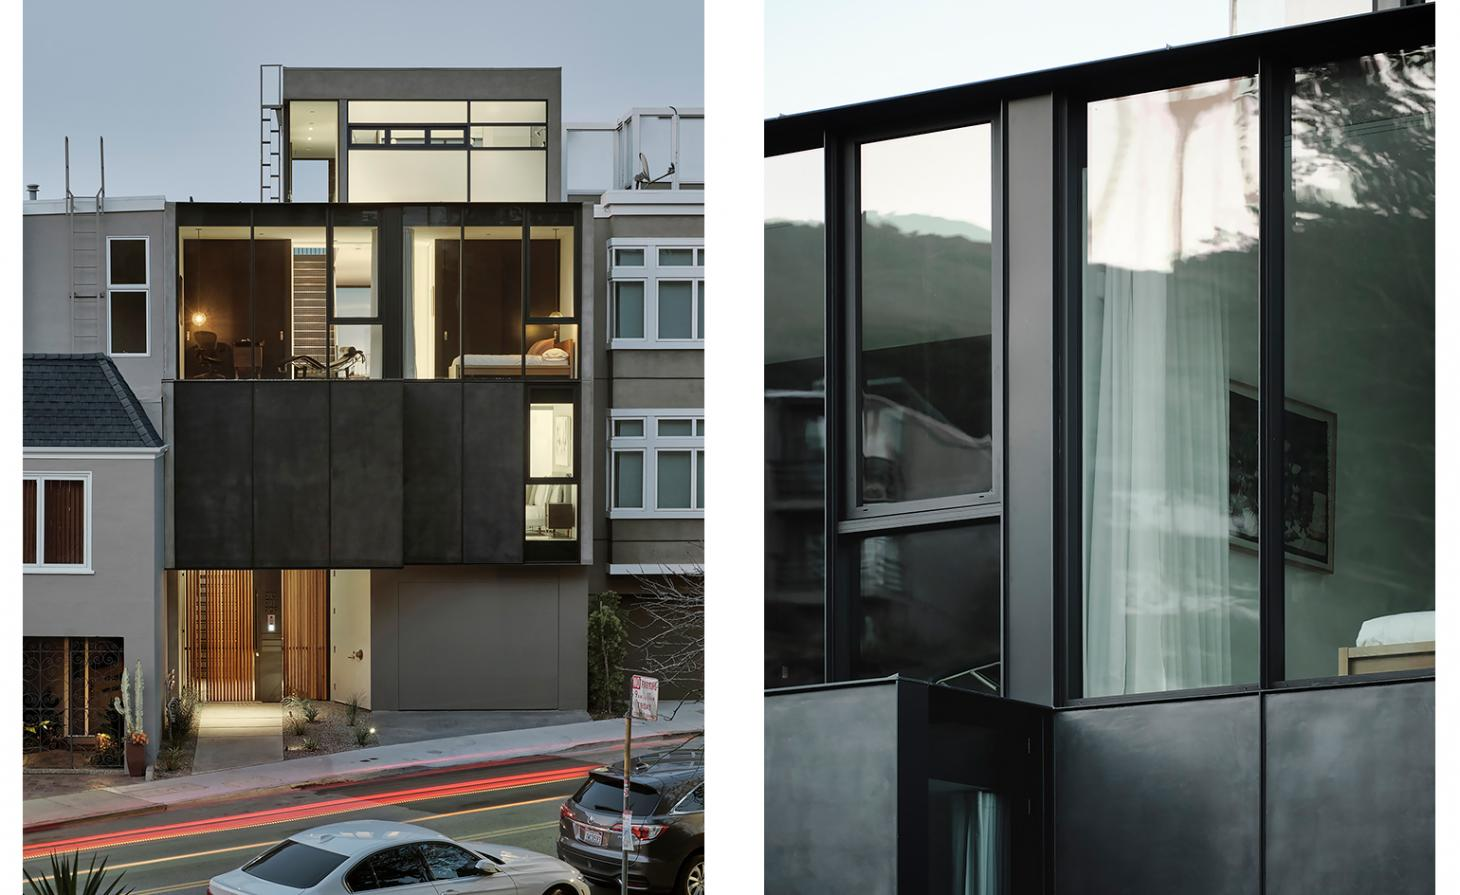 Twin Peaks Residences' photo showing exterior views at dusk and in close up